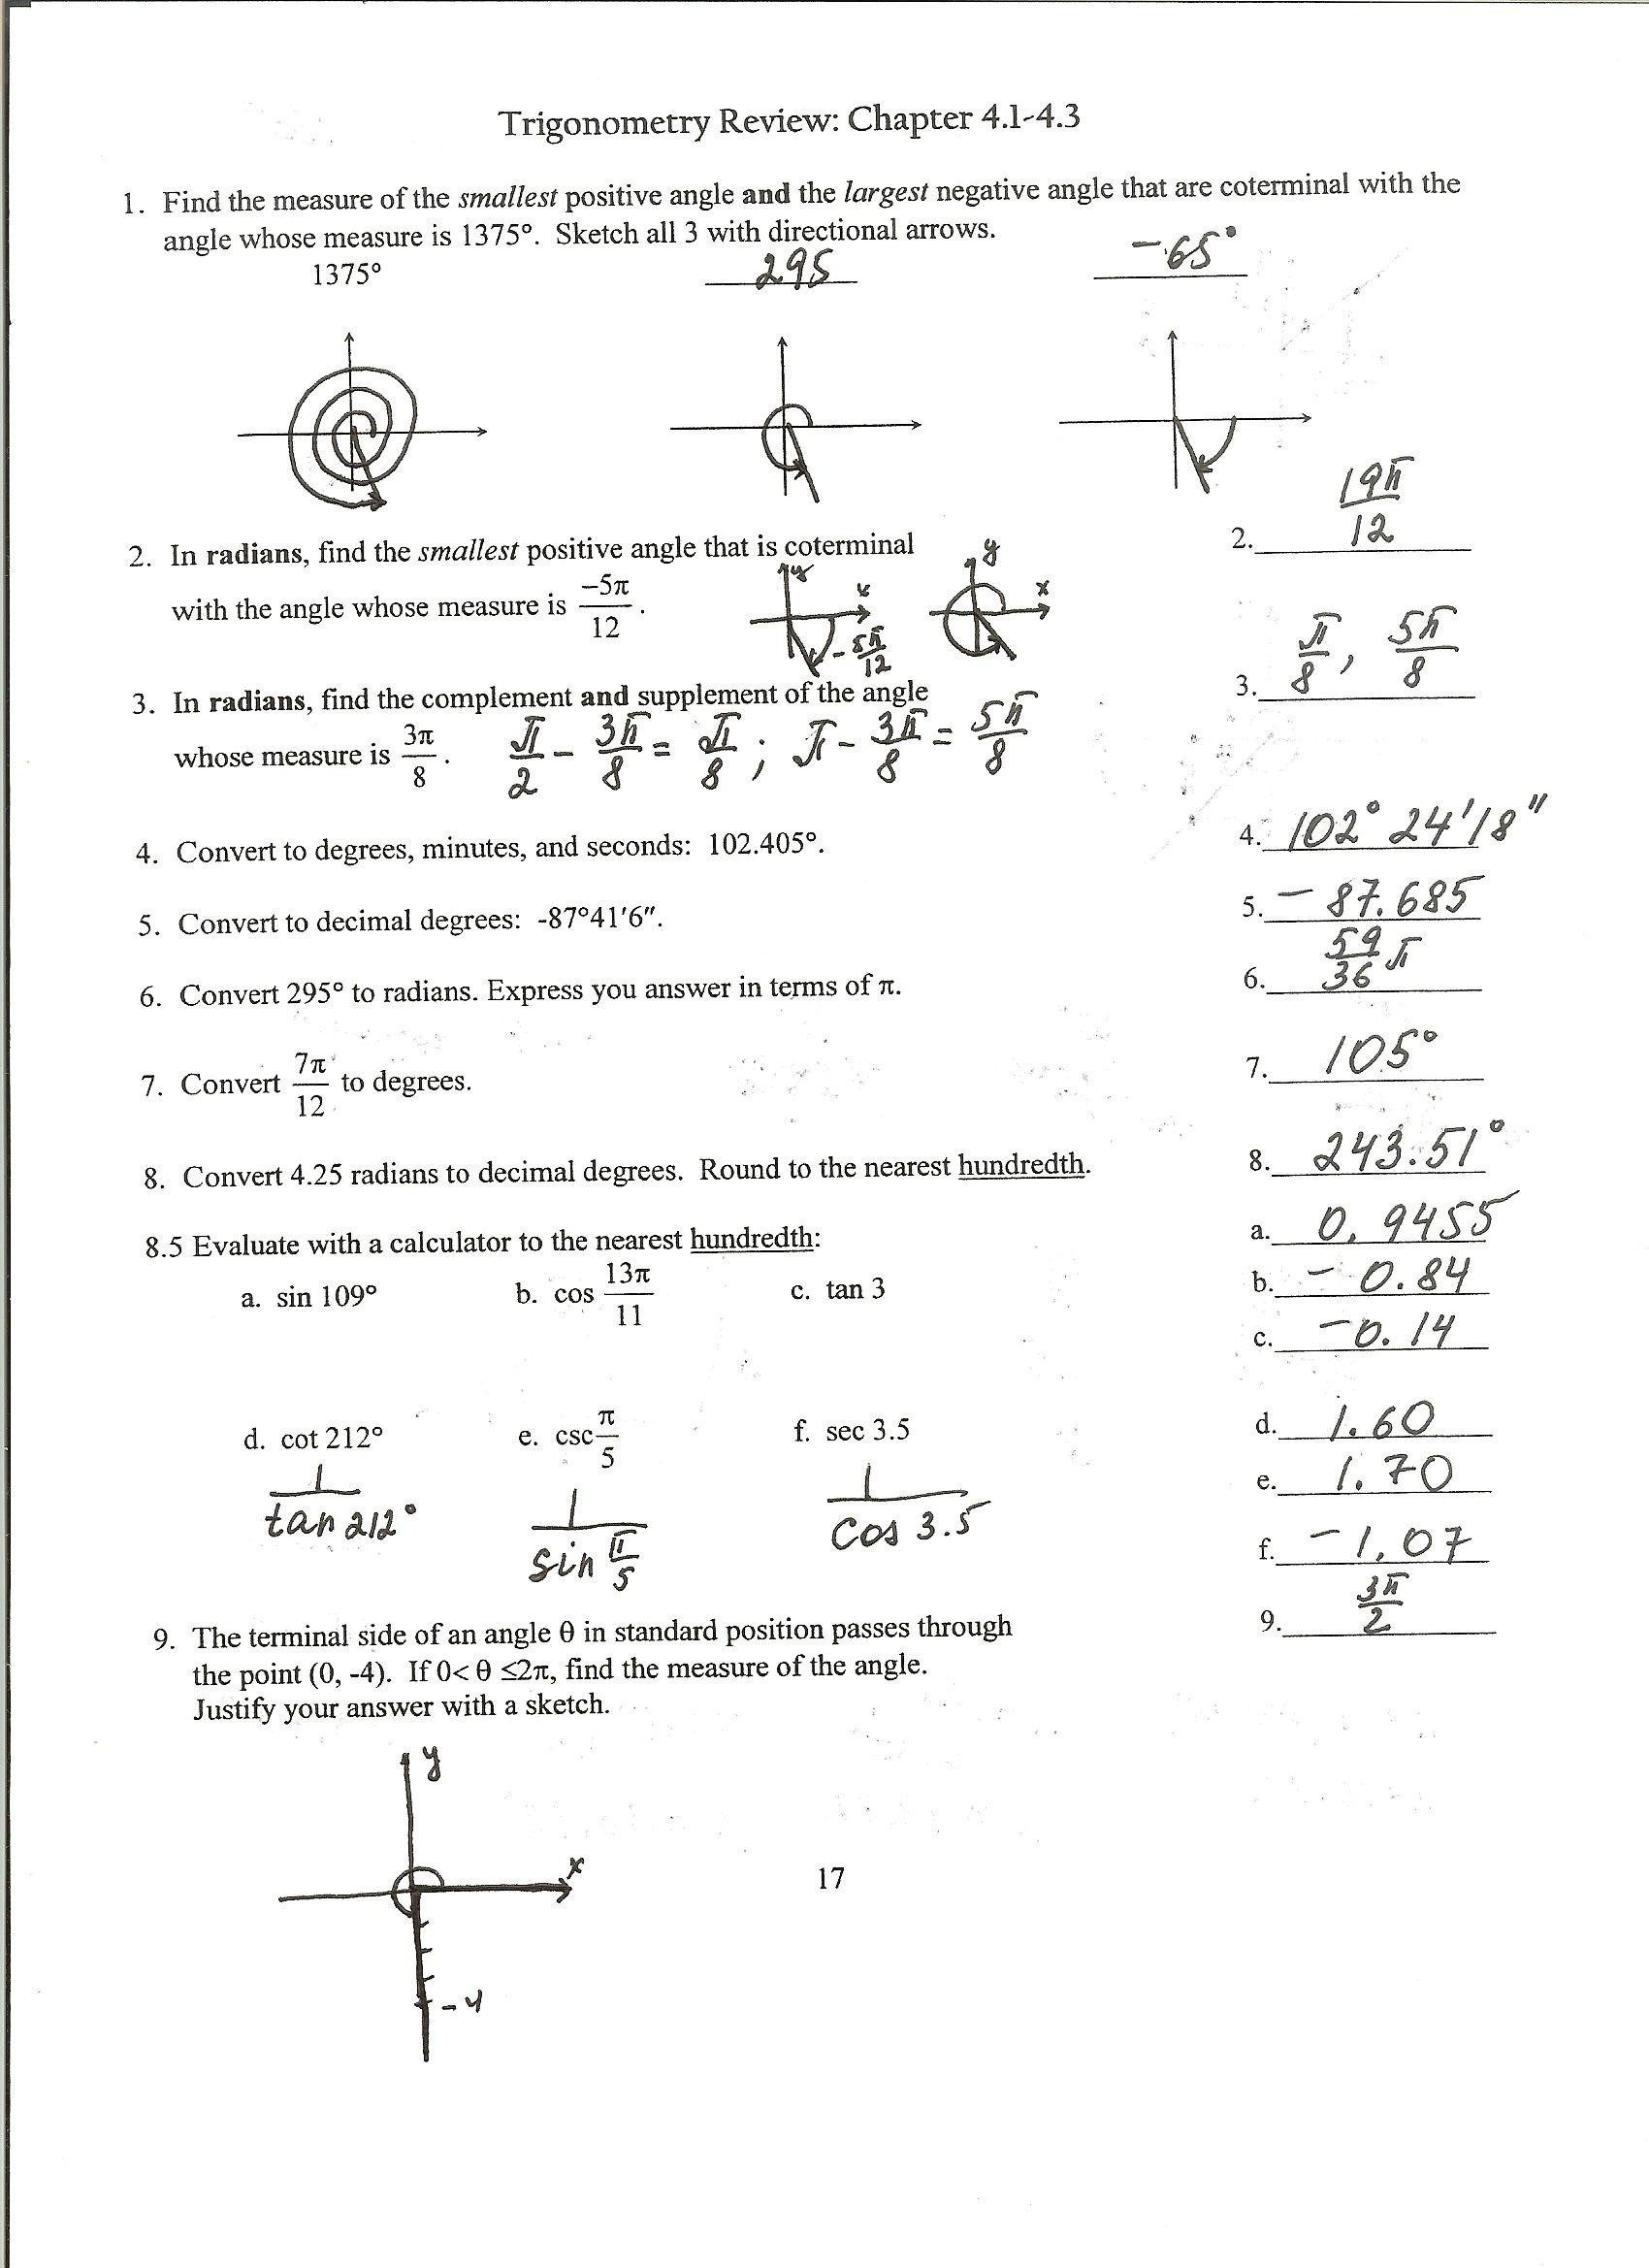 Beautiful Inequality For All Beautiful Inequality For All Pleasant In Order To My Word Problem Worksheets Inequality Word Problems Writing Linear Equations